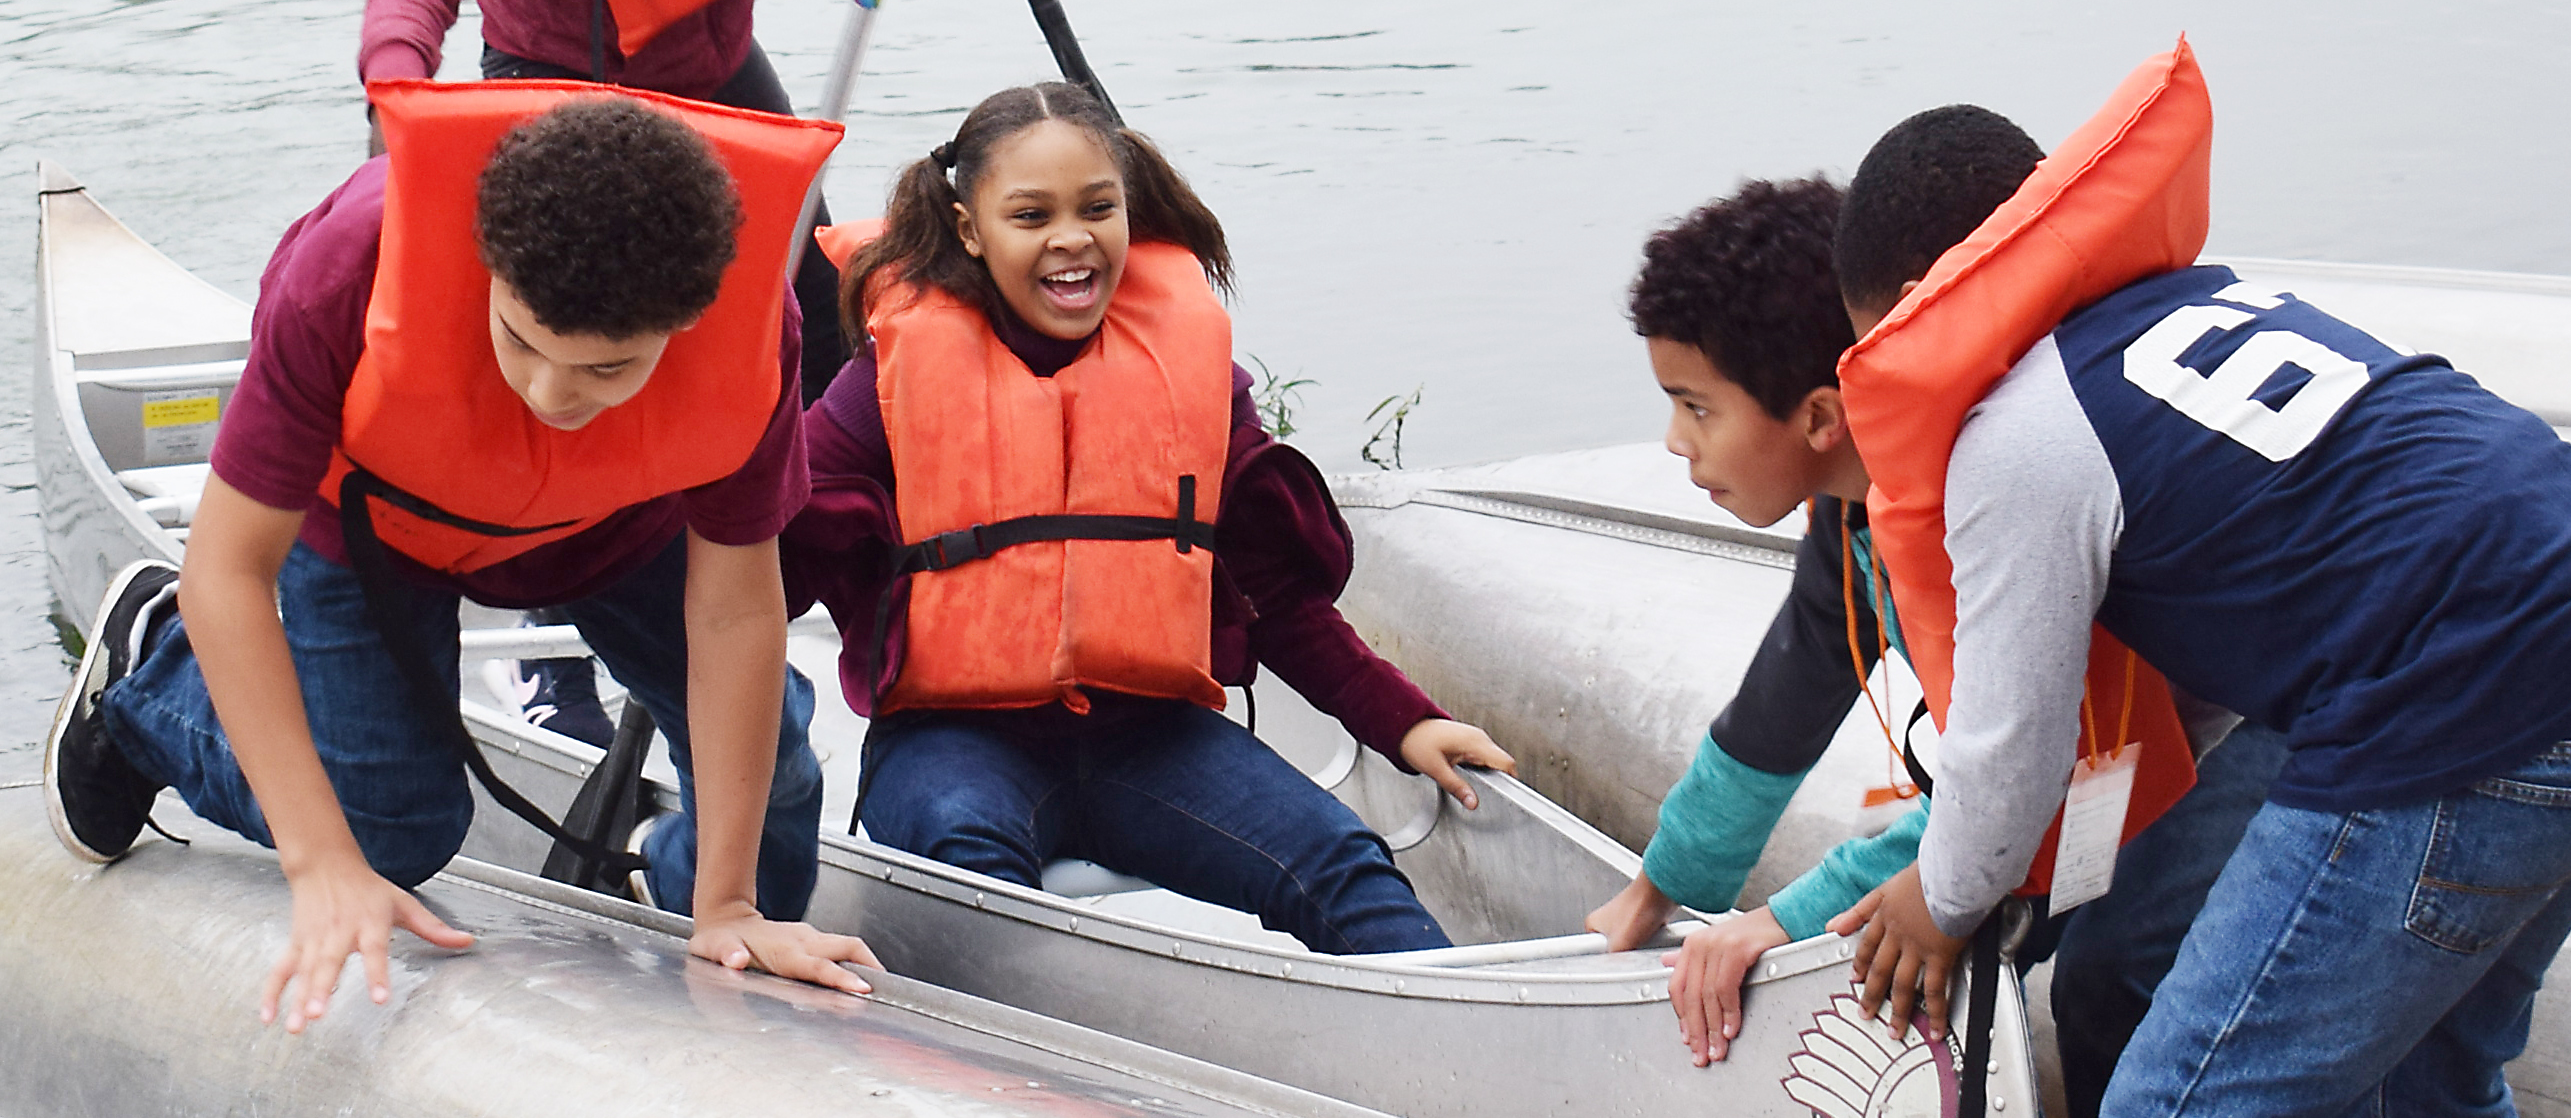 Students wearing life jackets laugh as they push a canoe into water